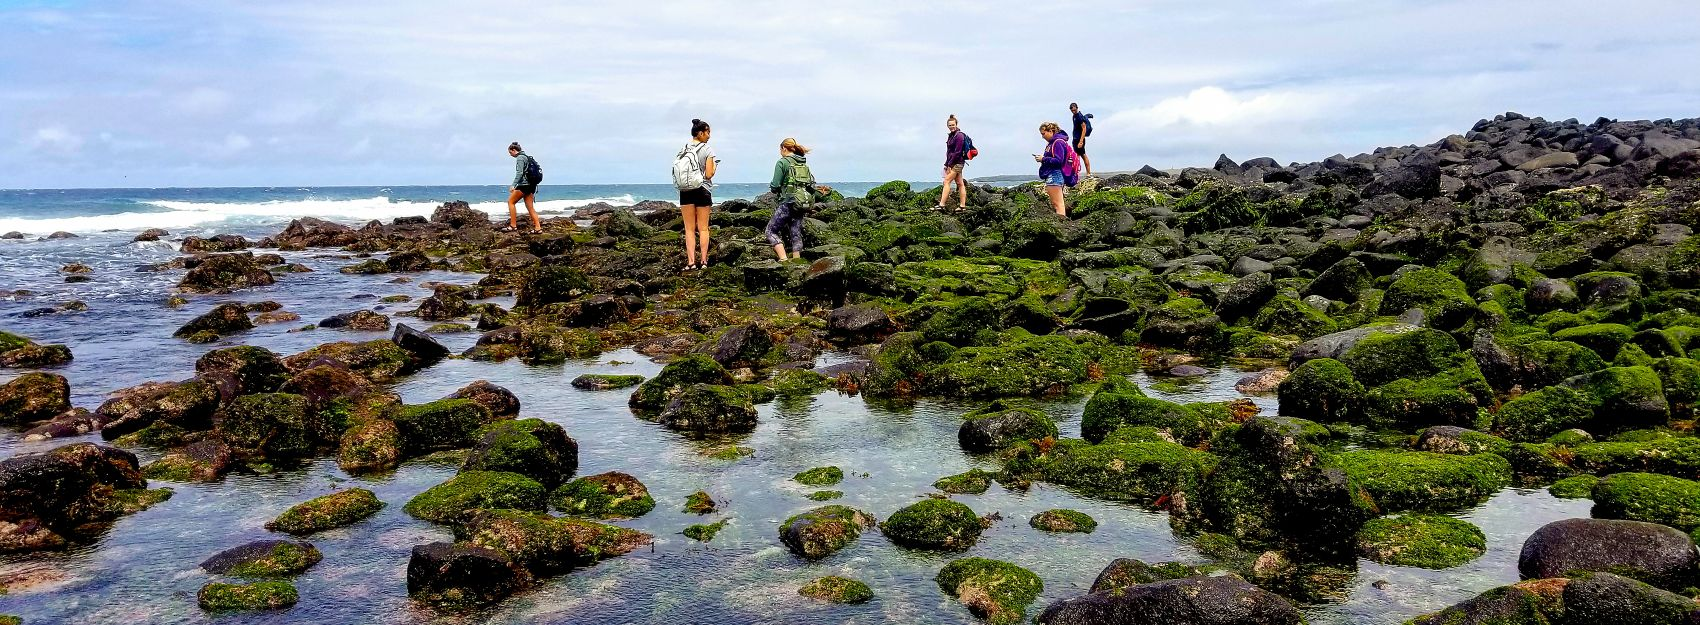 Students studying the water in the Galapagos Islands